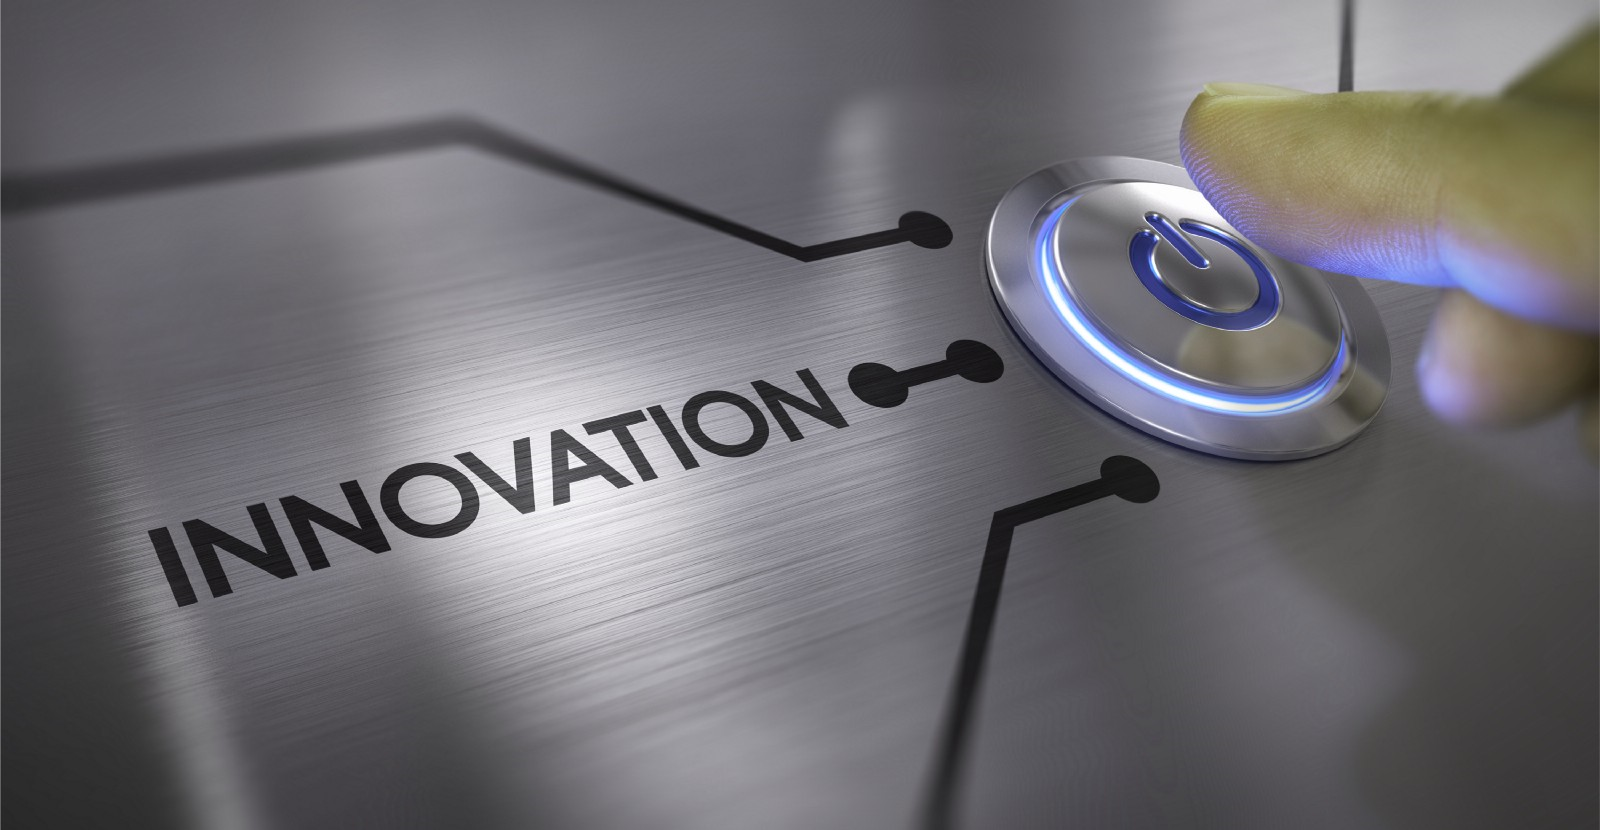 What innovative solutions can a facility company offer?